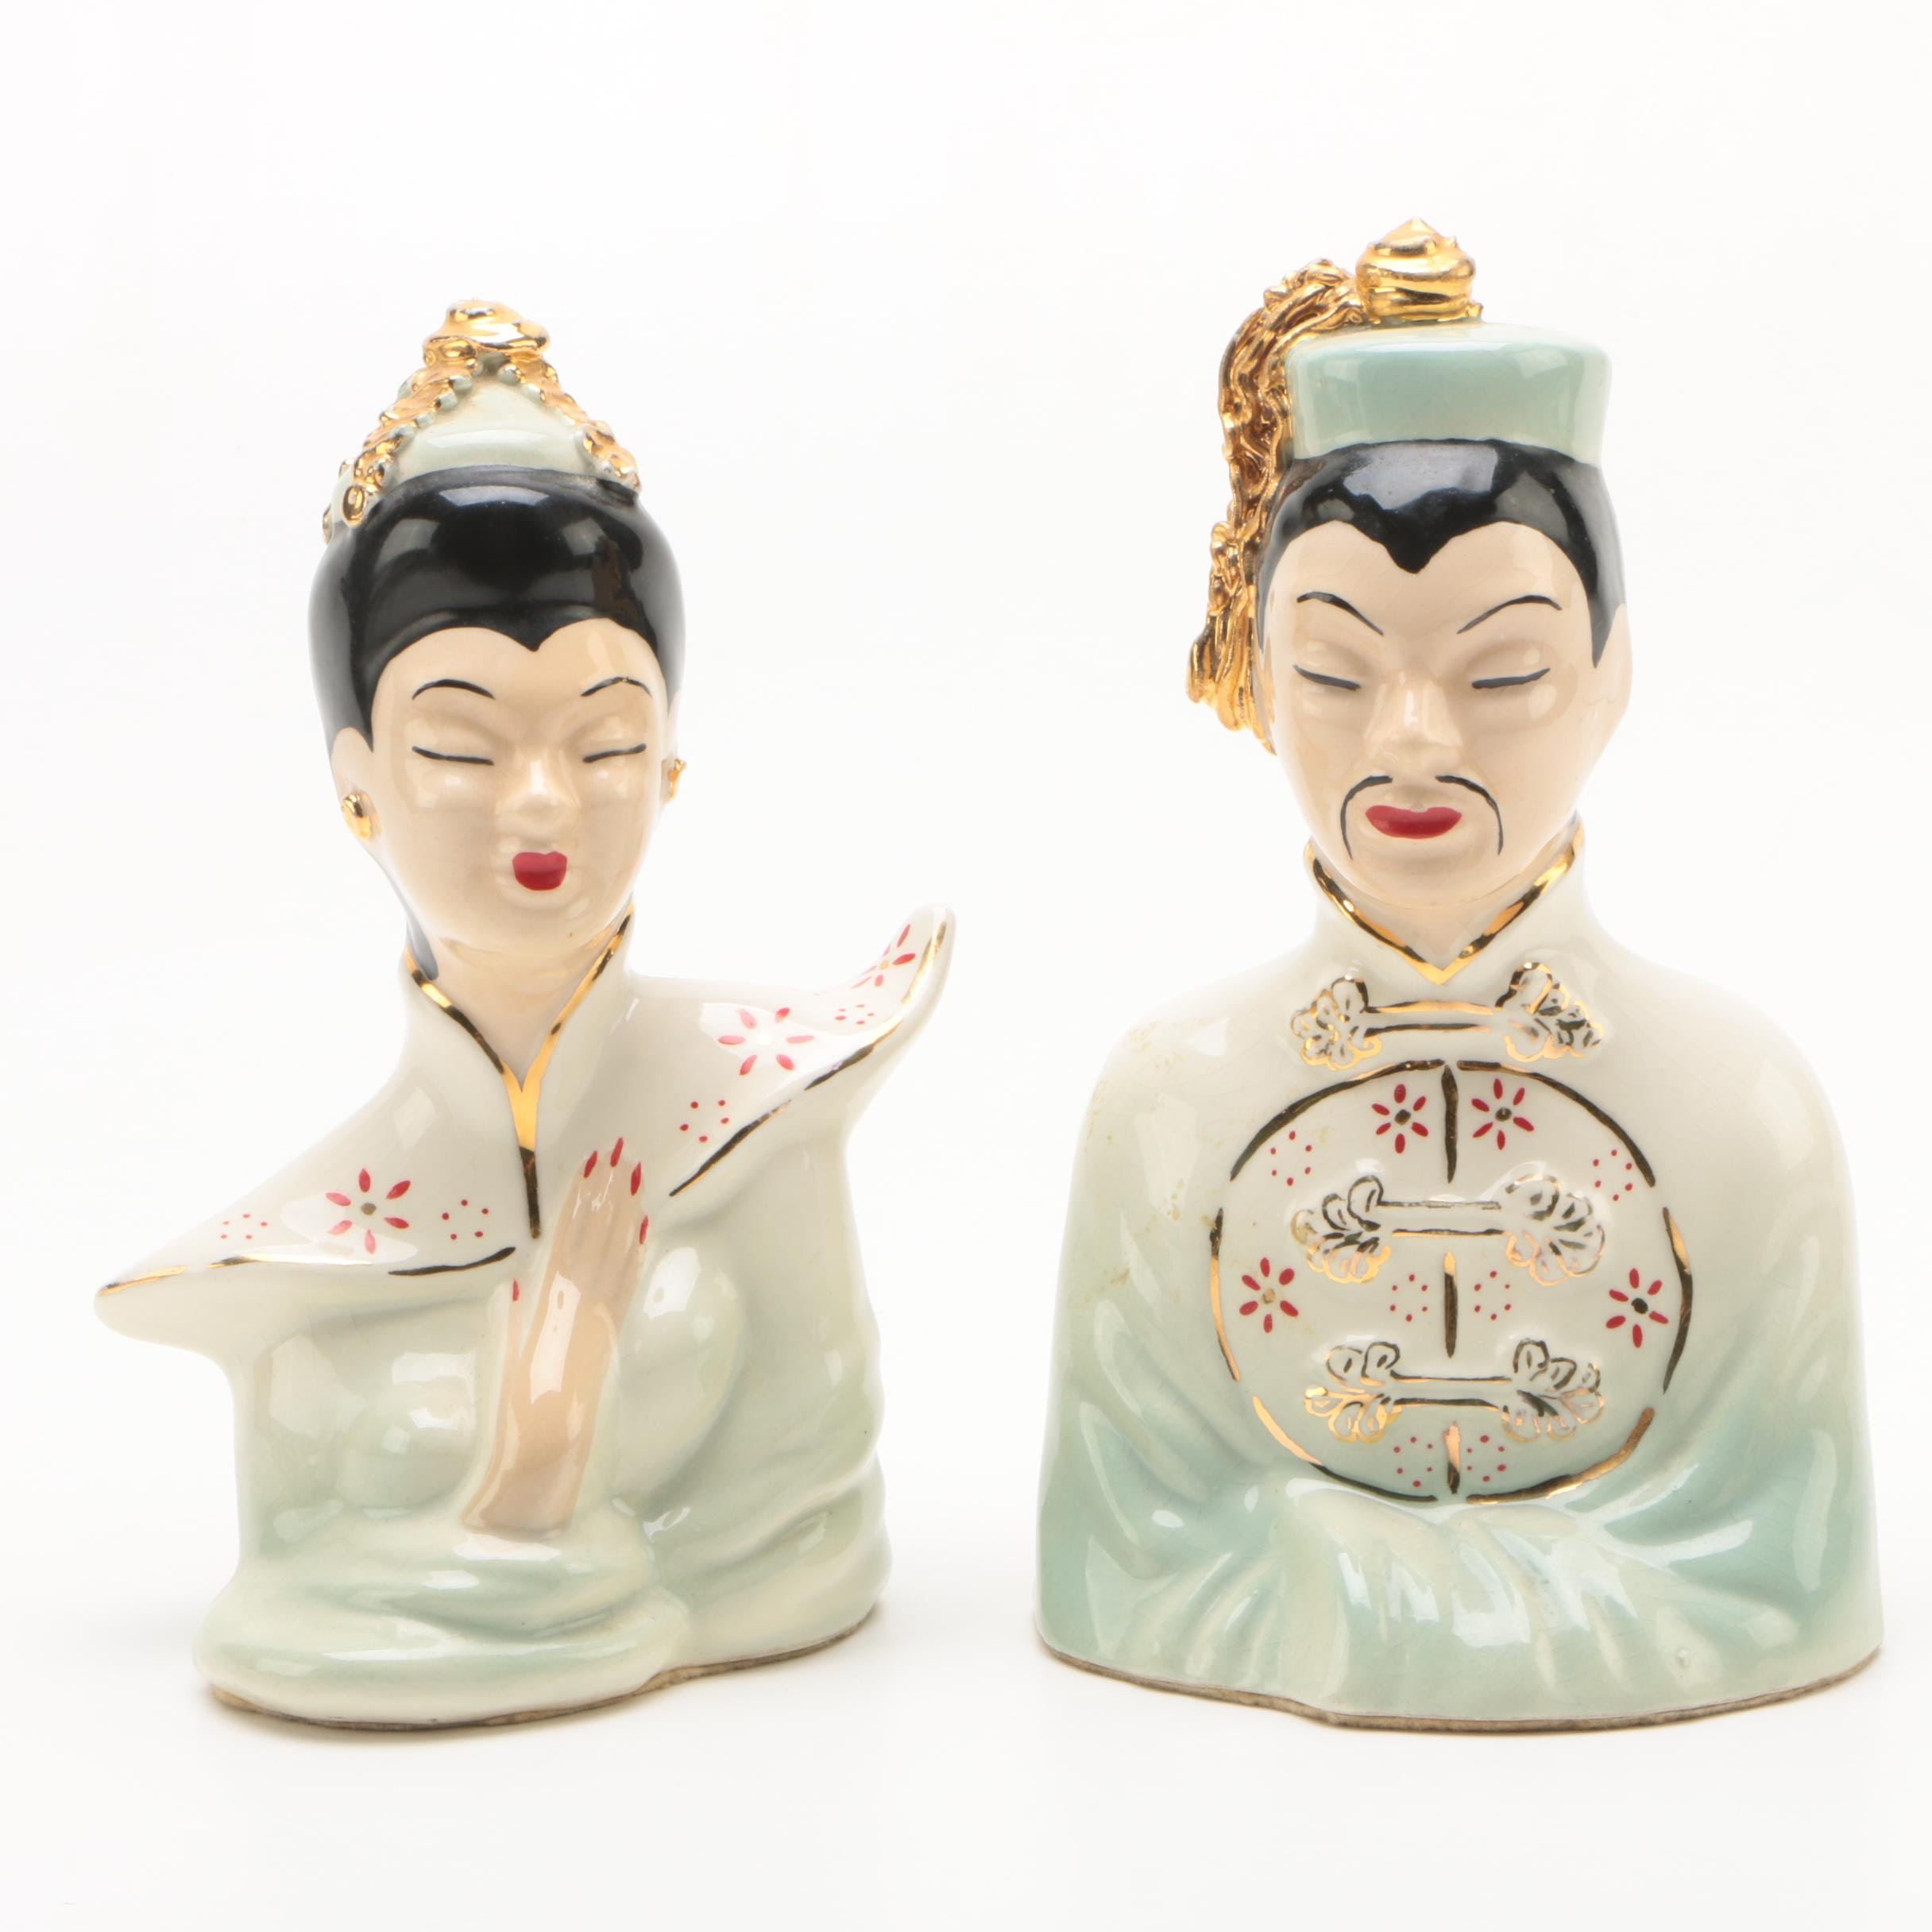 Vintage Chinese Inspired Hand-Painted Ceramic Bust Figurines